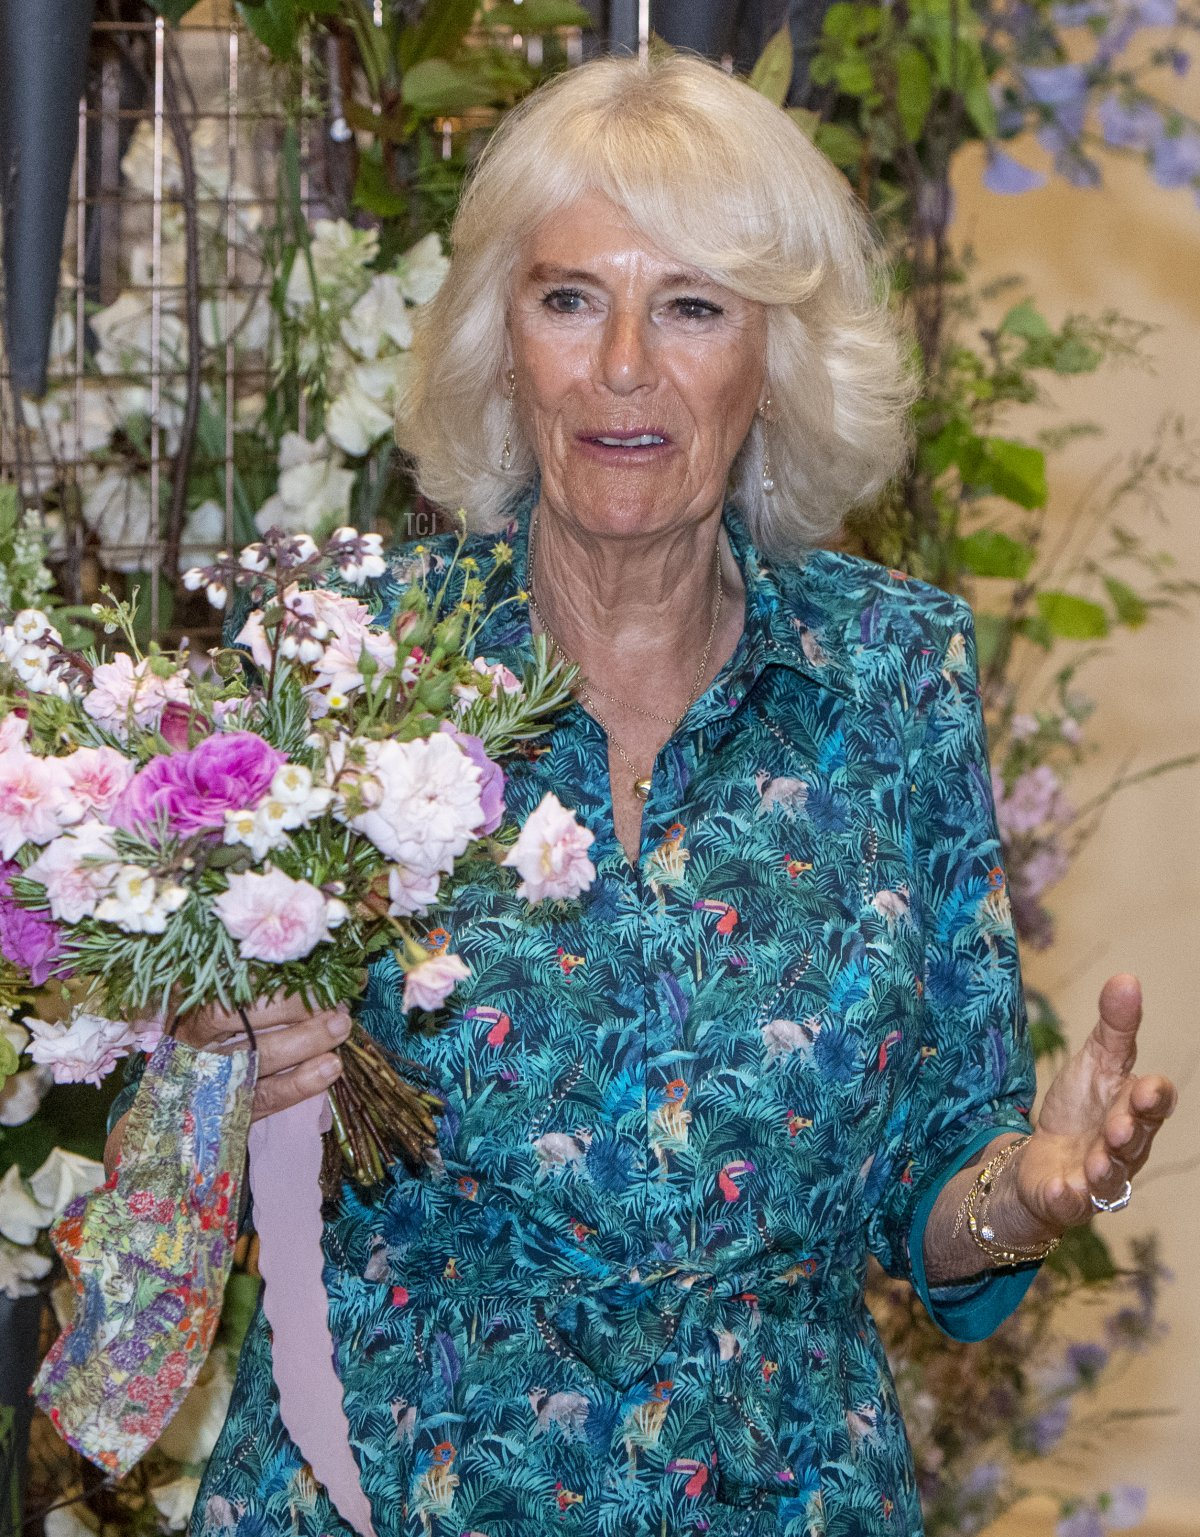 Camilla, The Duchess of Cornwall, with a bouquet with rosemary in as a sign of remembrance, acknowledging that today would have been the birthday of The Duke of Edinburgh, visits the Garden Museum to open the annual British Flowers Week festival in collaboration with New Covent Garden Flower Market on June 10, 2021 in London, England